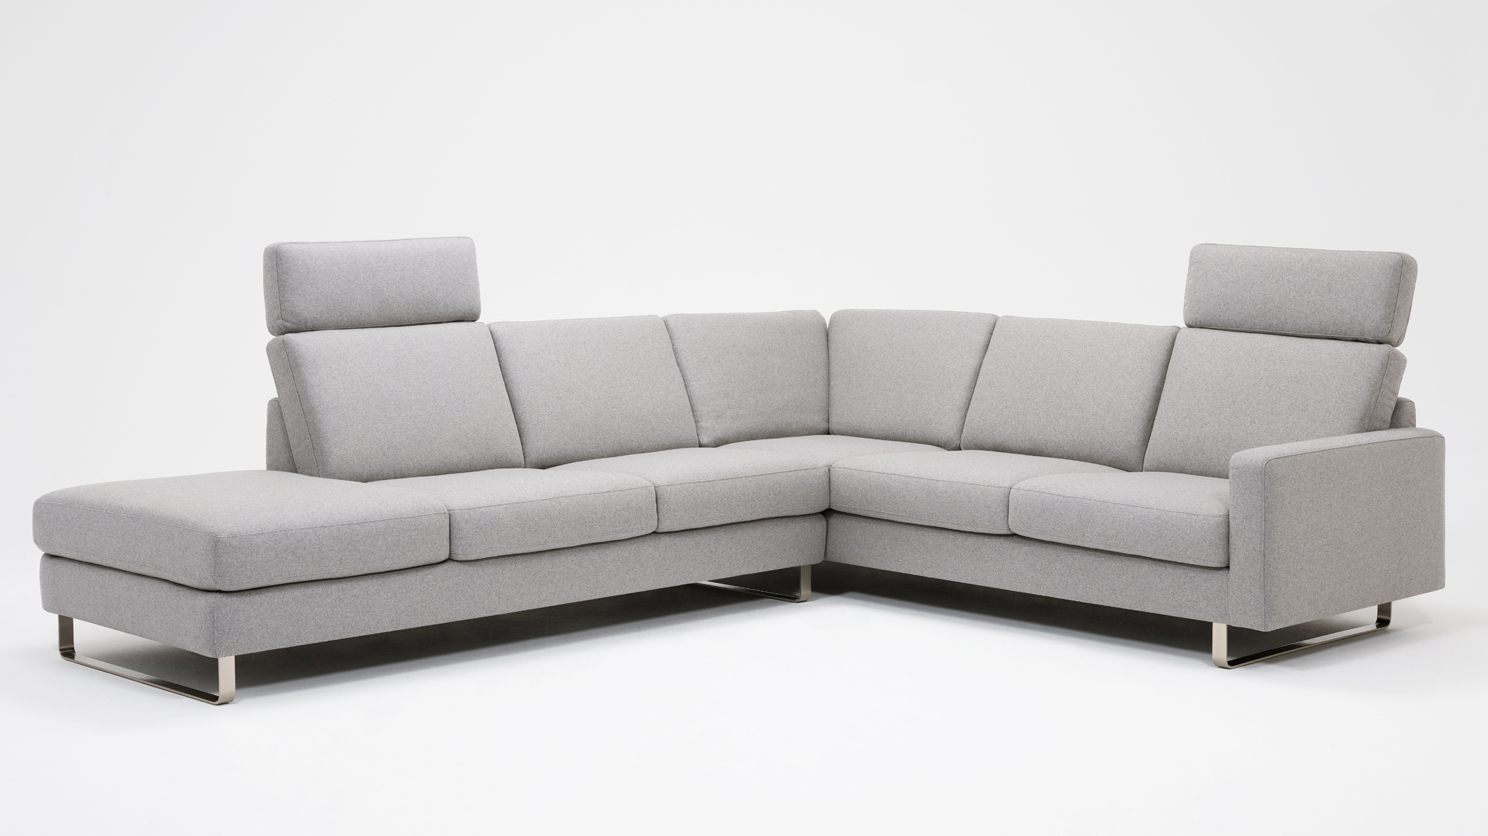 Oskar 2 Piece Sectional Sofa With Headrests – Fabric Within Eq3 Sectional Sofas (View 11 of 15)